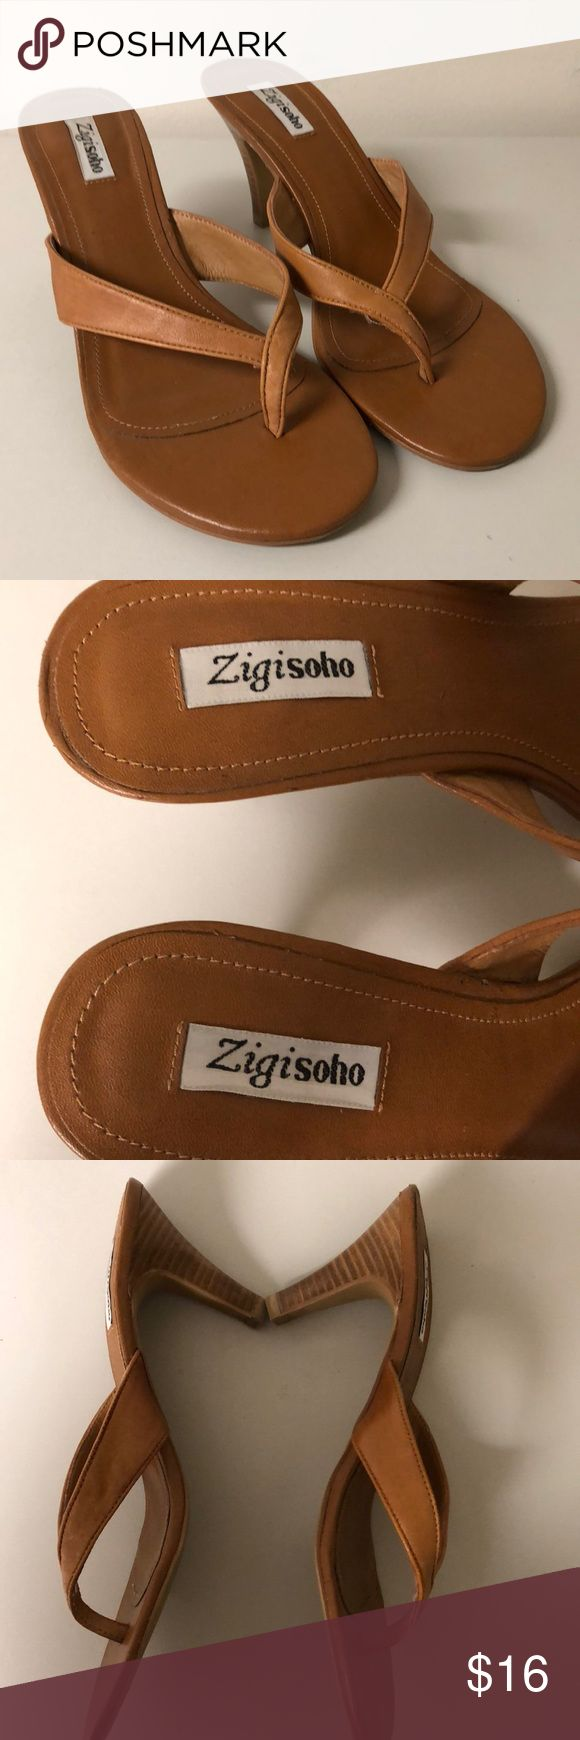 Zigisoho Women's Tan Leather Sandals Size 9 Zigisoho Womens's Tan Leather Sandals Size 9 Pre-owned and worn  3 Inch Heel Zigisoho Shoes Sandals #tansandalsheels